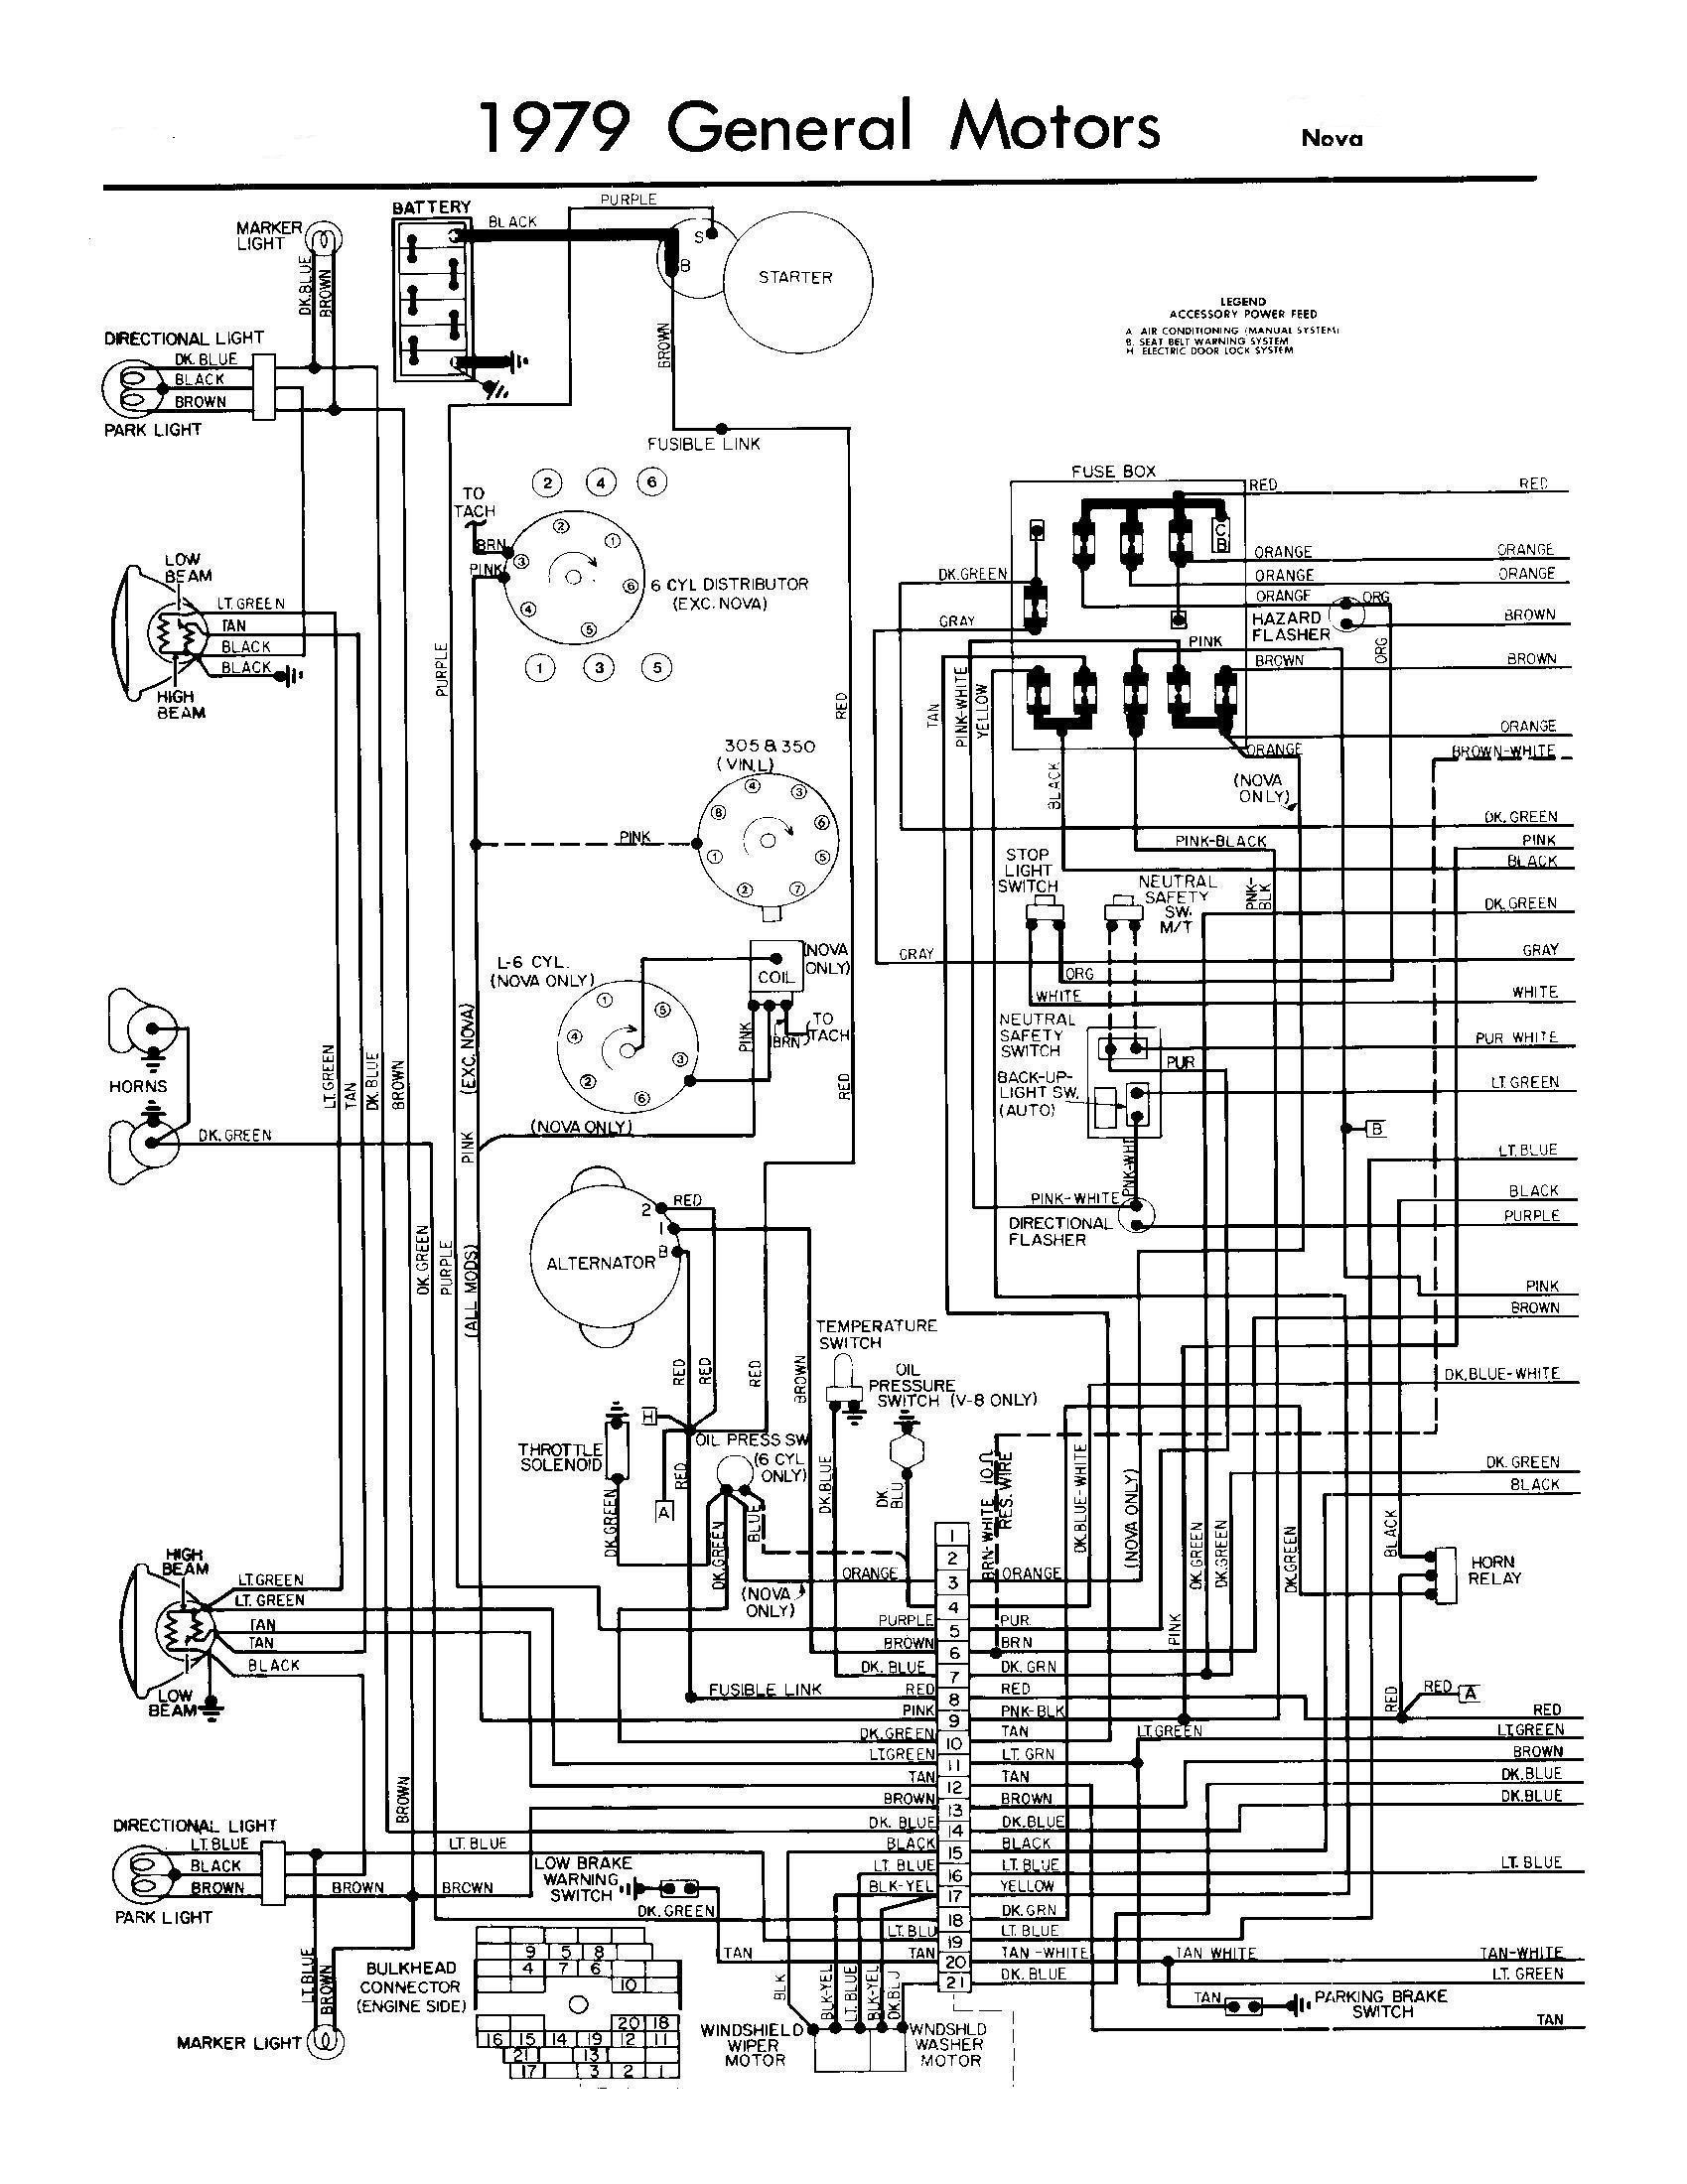 1981 camaro fuse panel diagram data wiring diagram 67 Camaro Wiring Harness Diagram